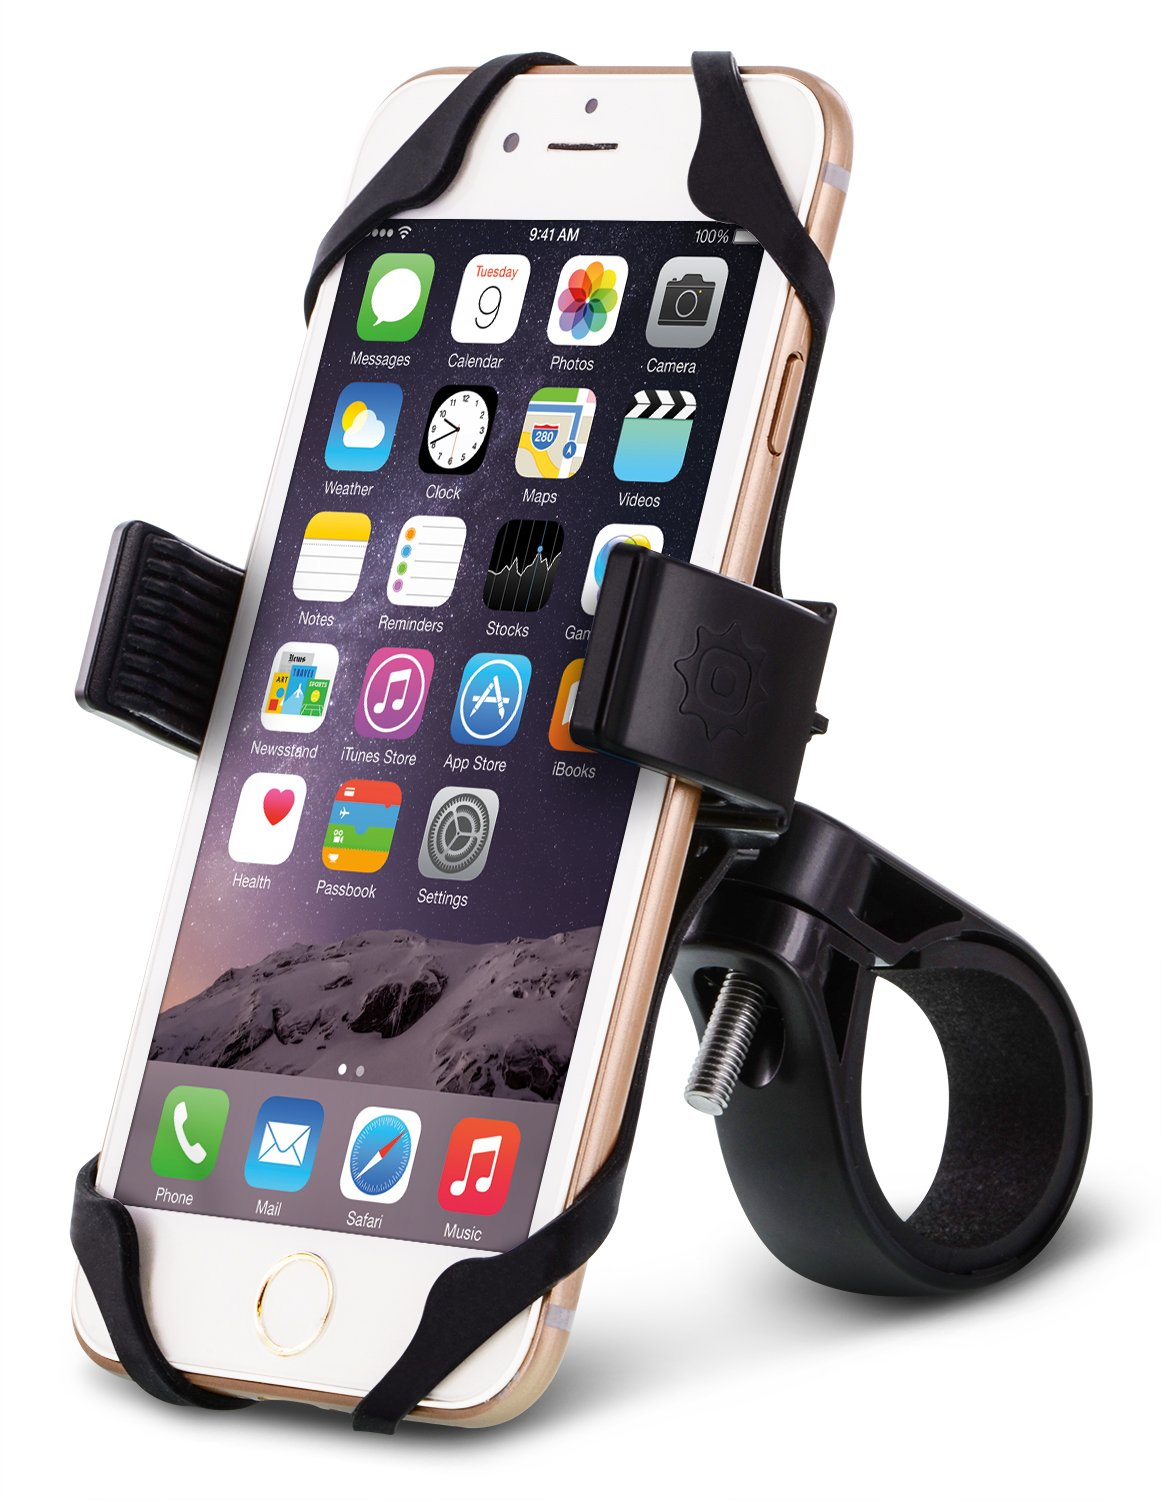 Okra Bicycle Motorcycle Phone Mount Holder [Extra Secure] Bike Handlebar Holder for iPhone Android all Smartphones Devices (Universal)